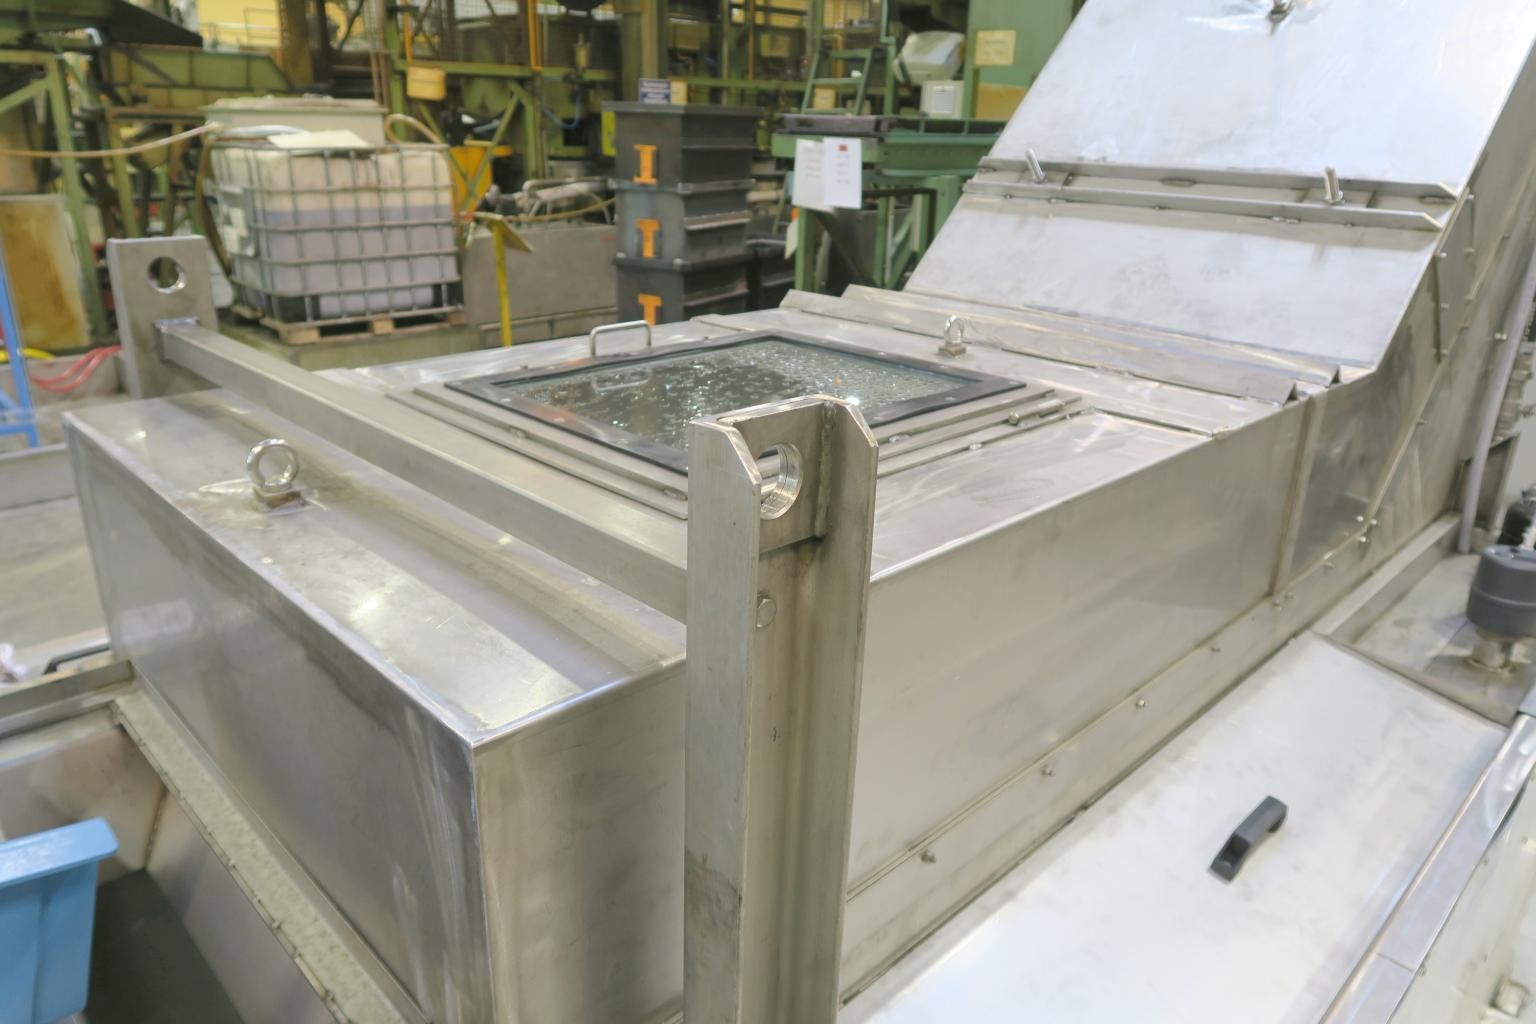 This fully automated cleaning line was developed for the inline ultrasonic cleaning of bulk goods. The parts are cleaned, dried and then transported onwards to the next processing stage – without any human intervention. Image credit:  Weber Ultrasonics